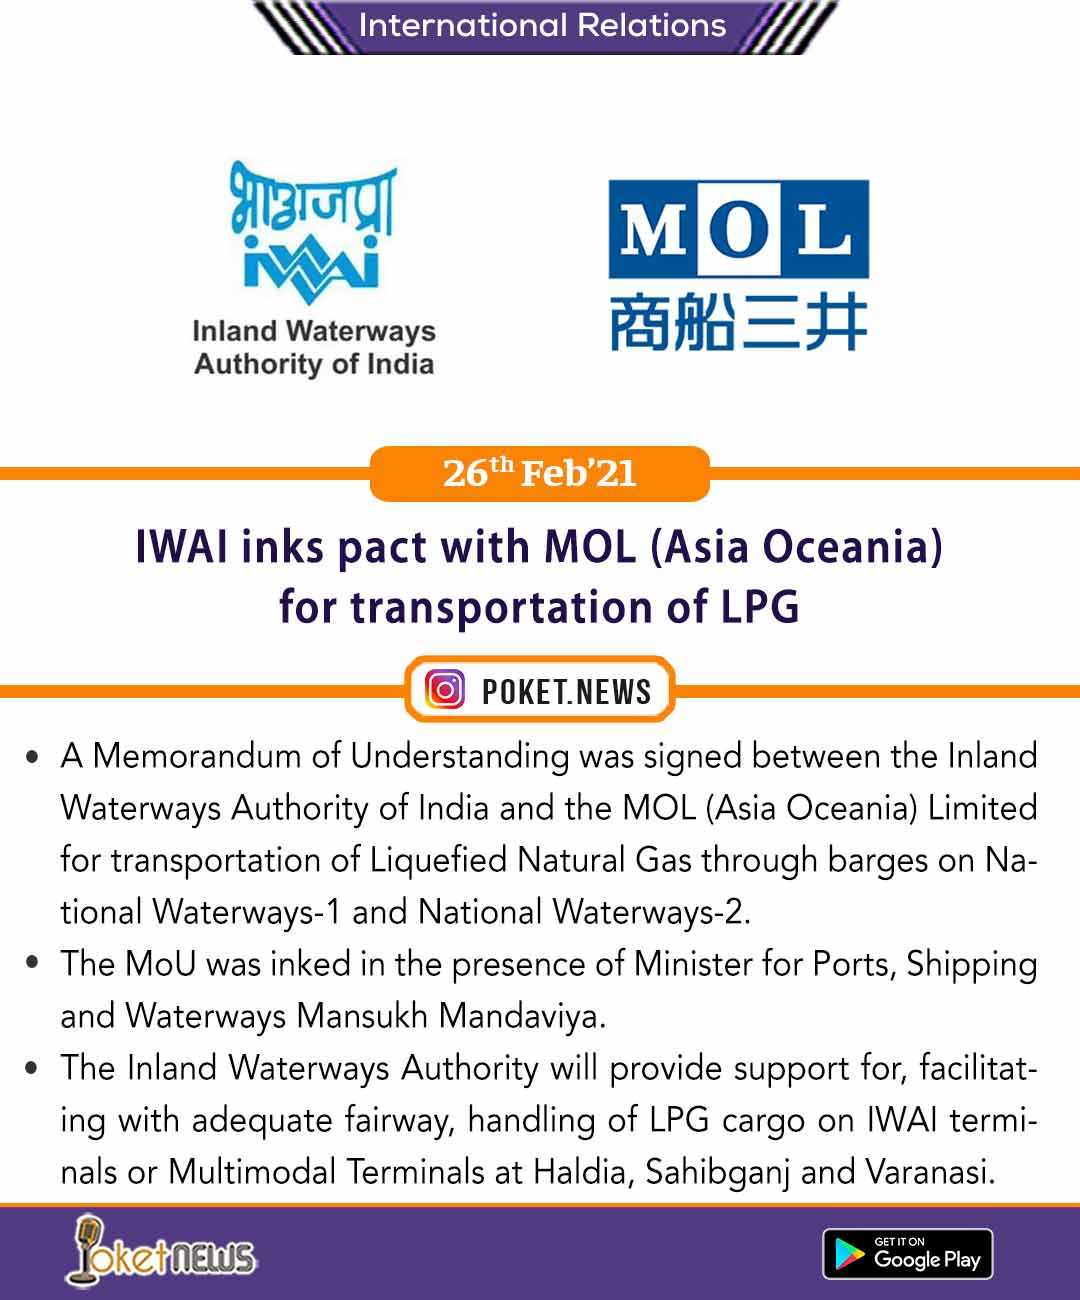 IWAI inks pact with MOL (Asia Oceania) for transportation of LPG